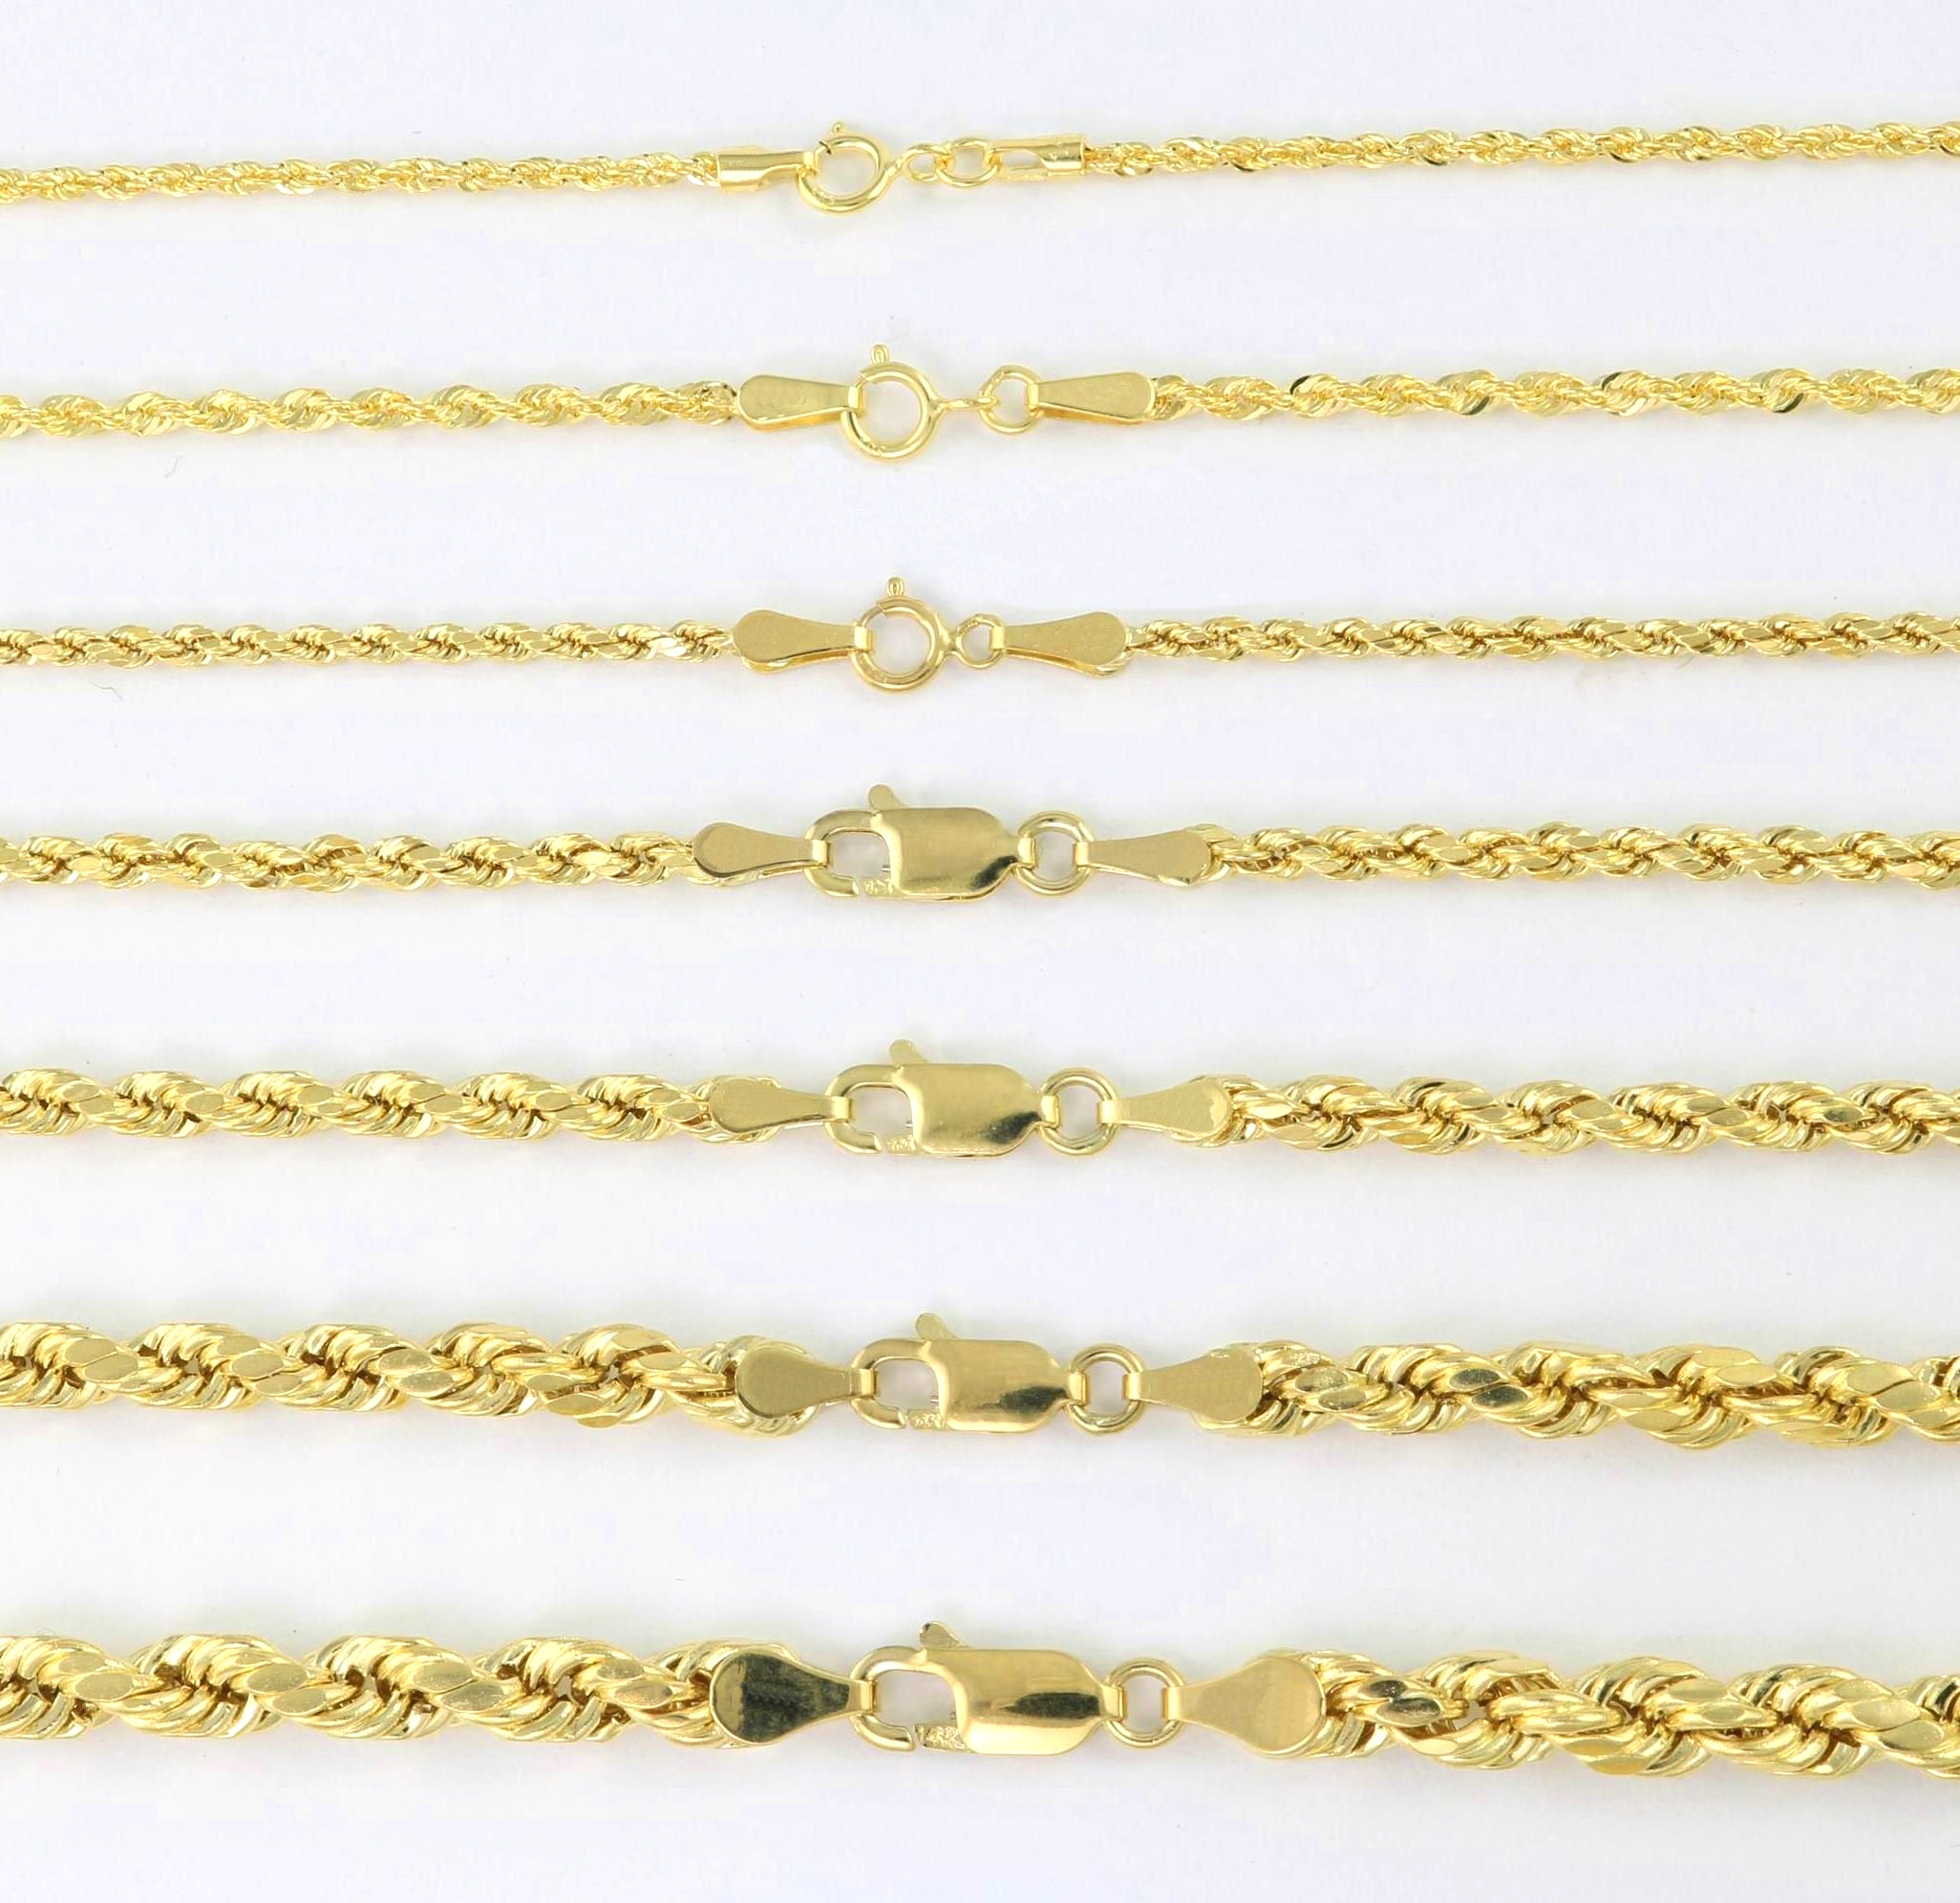 0.9 grams 20 inches Ladies 14K Yellow Gold Carded Cable Rope Chain Necklace